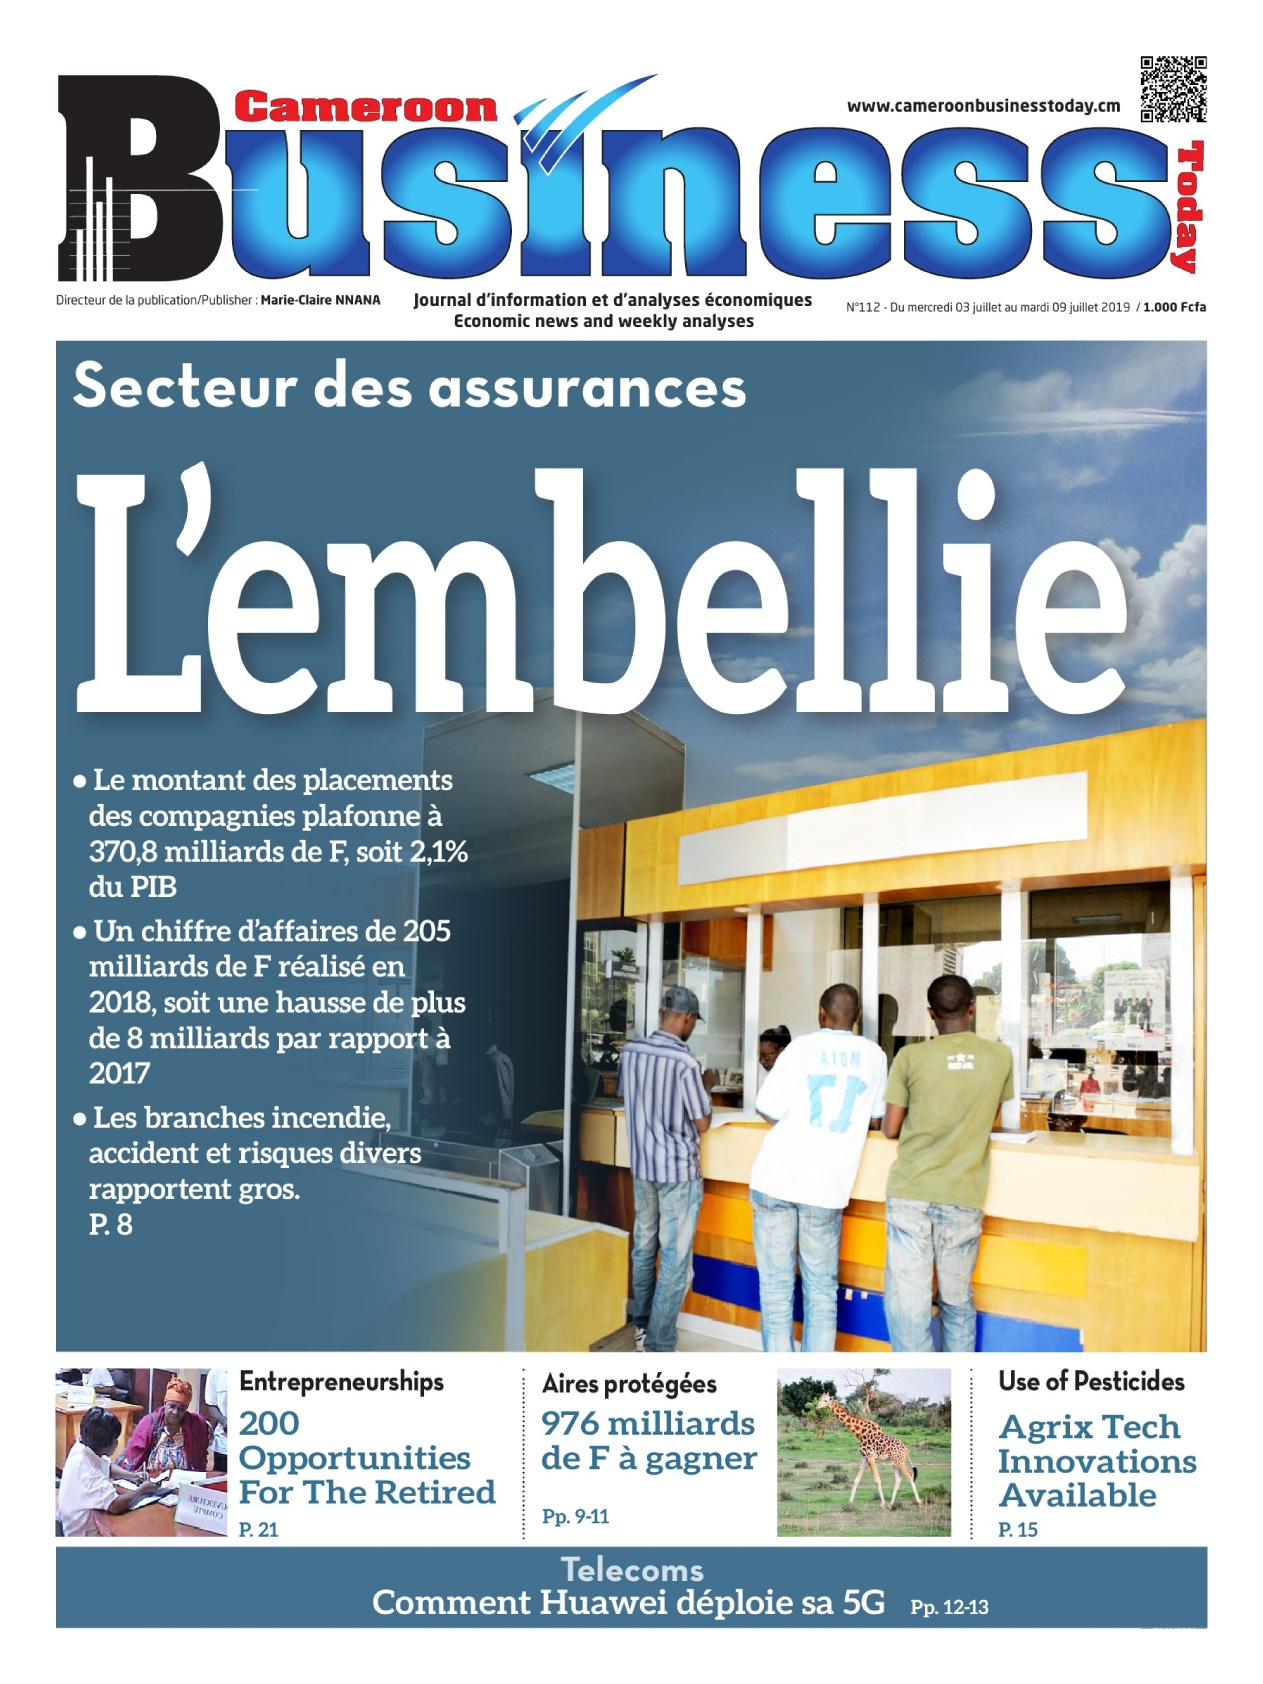 Cameroon Businness Today - 03/07/2019